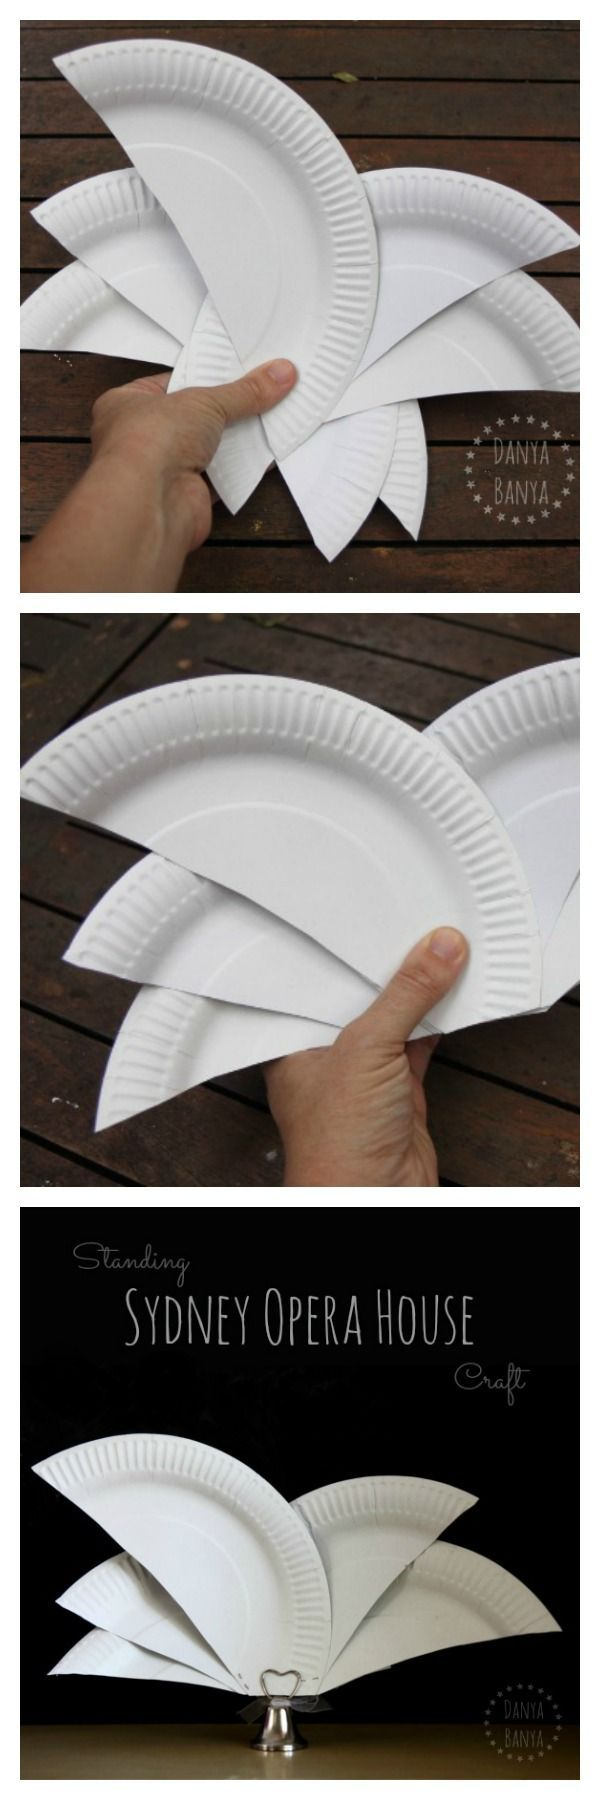 How to make an easy Sydney Opera House craft from paper plates. The Sydney Opera House is one of Australia's most famous icons. ~ Danya Banya